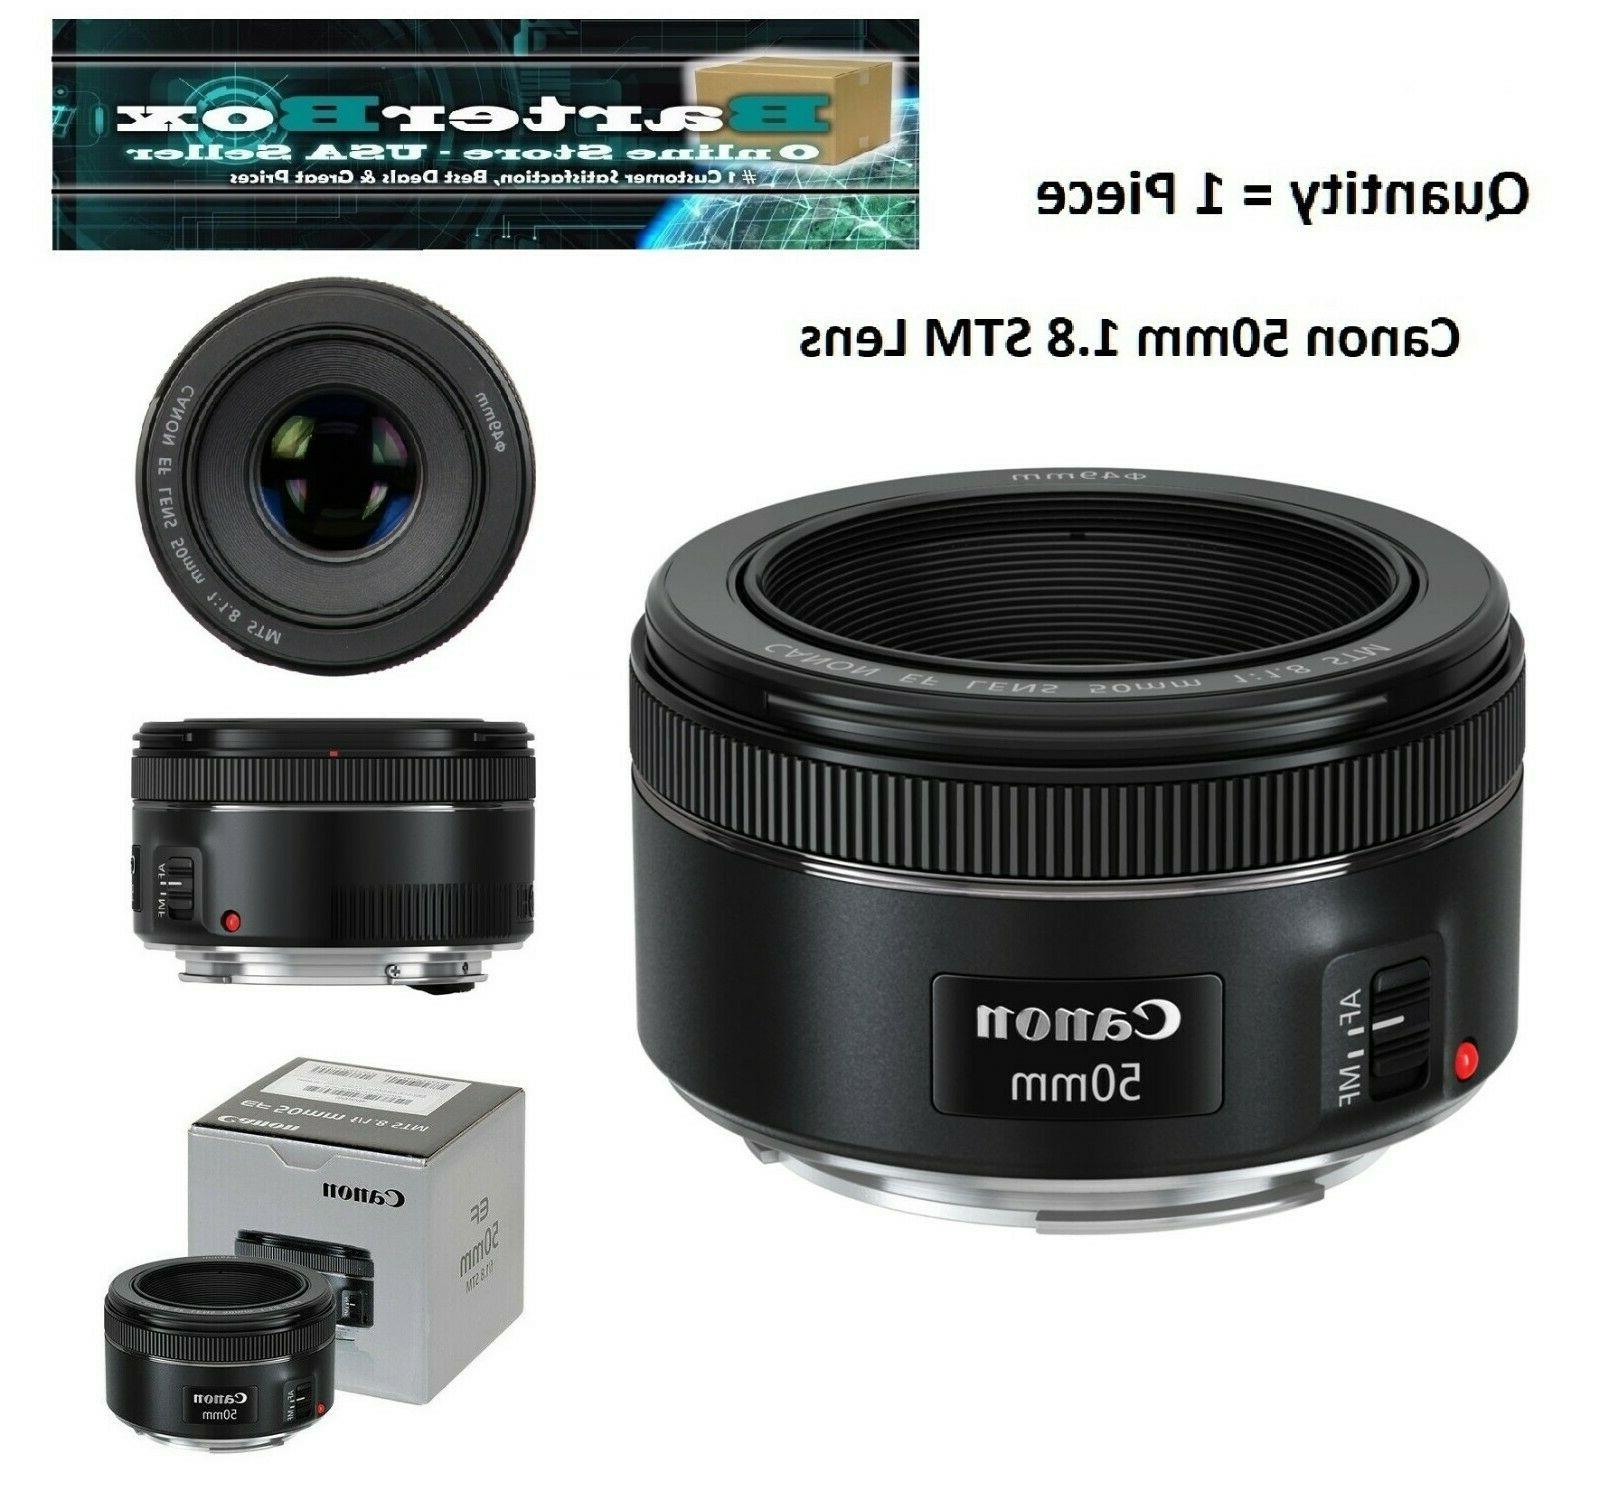 Easter Canon 50mm Stm Lens 0570C002 Deal Box